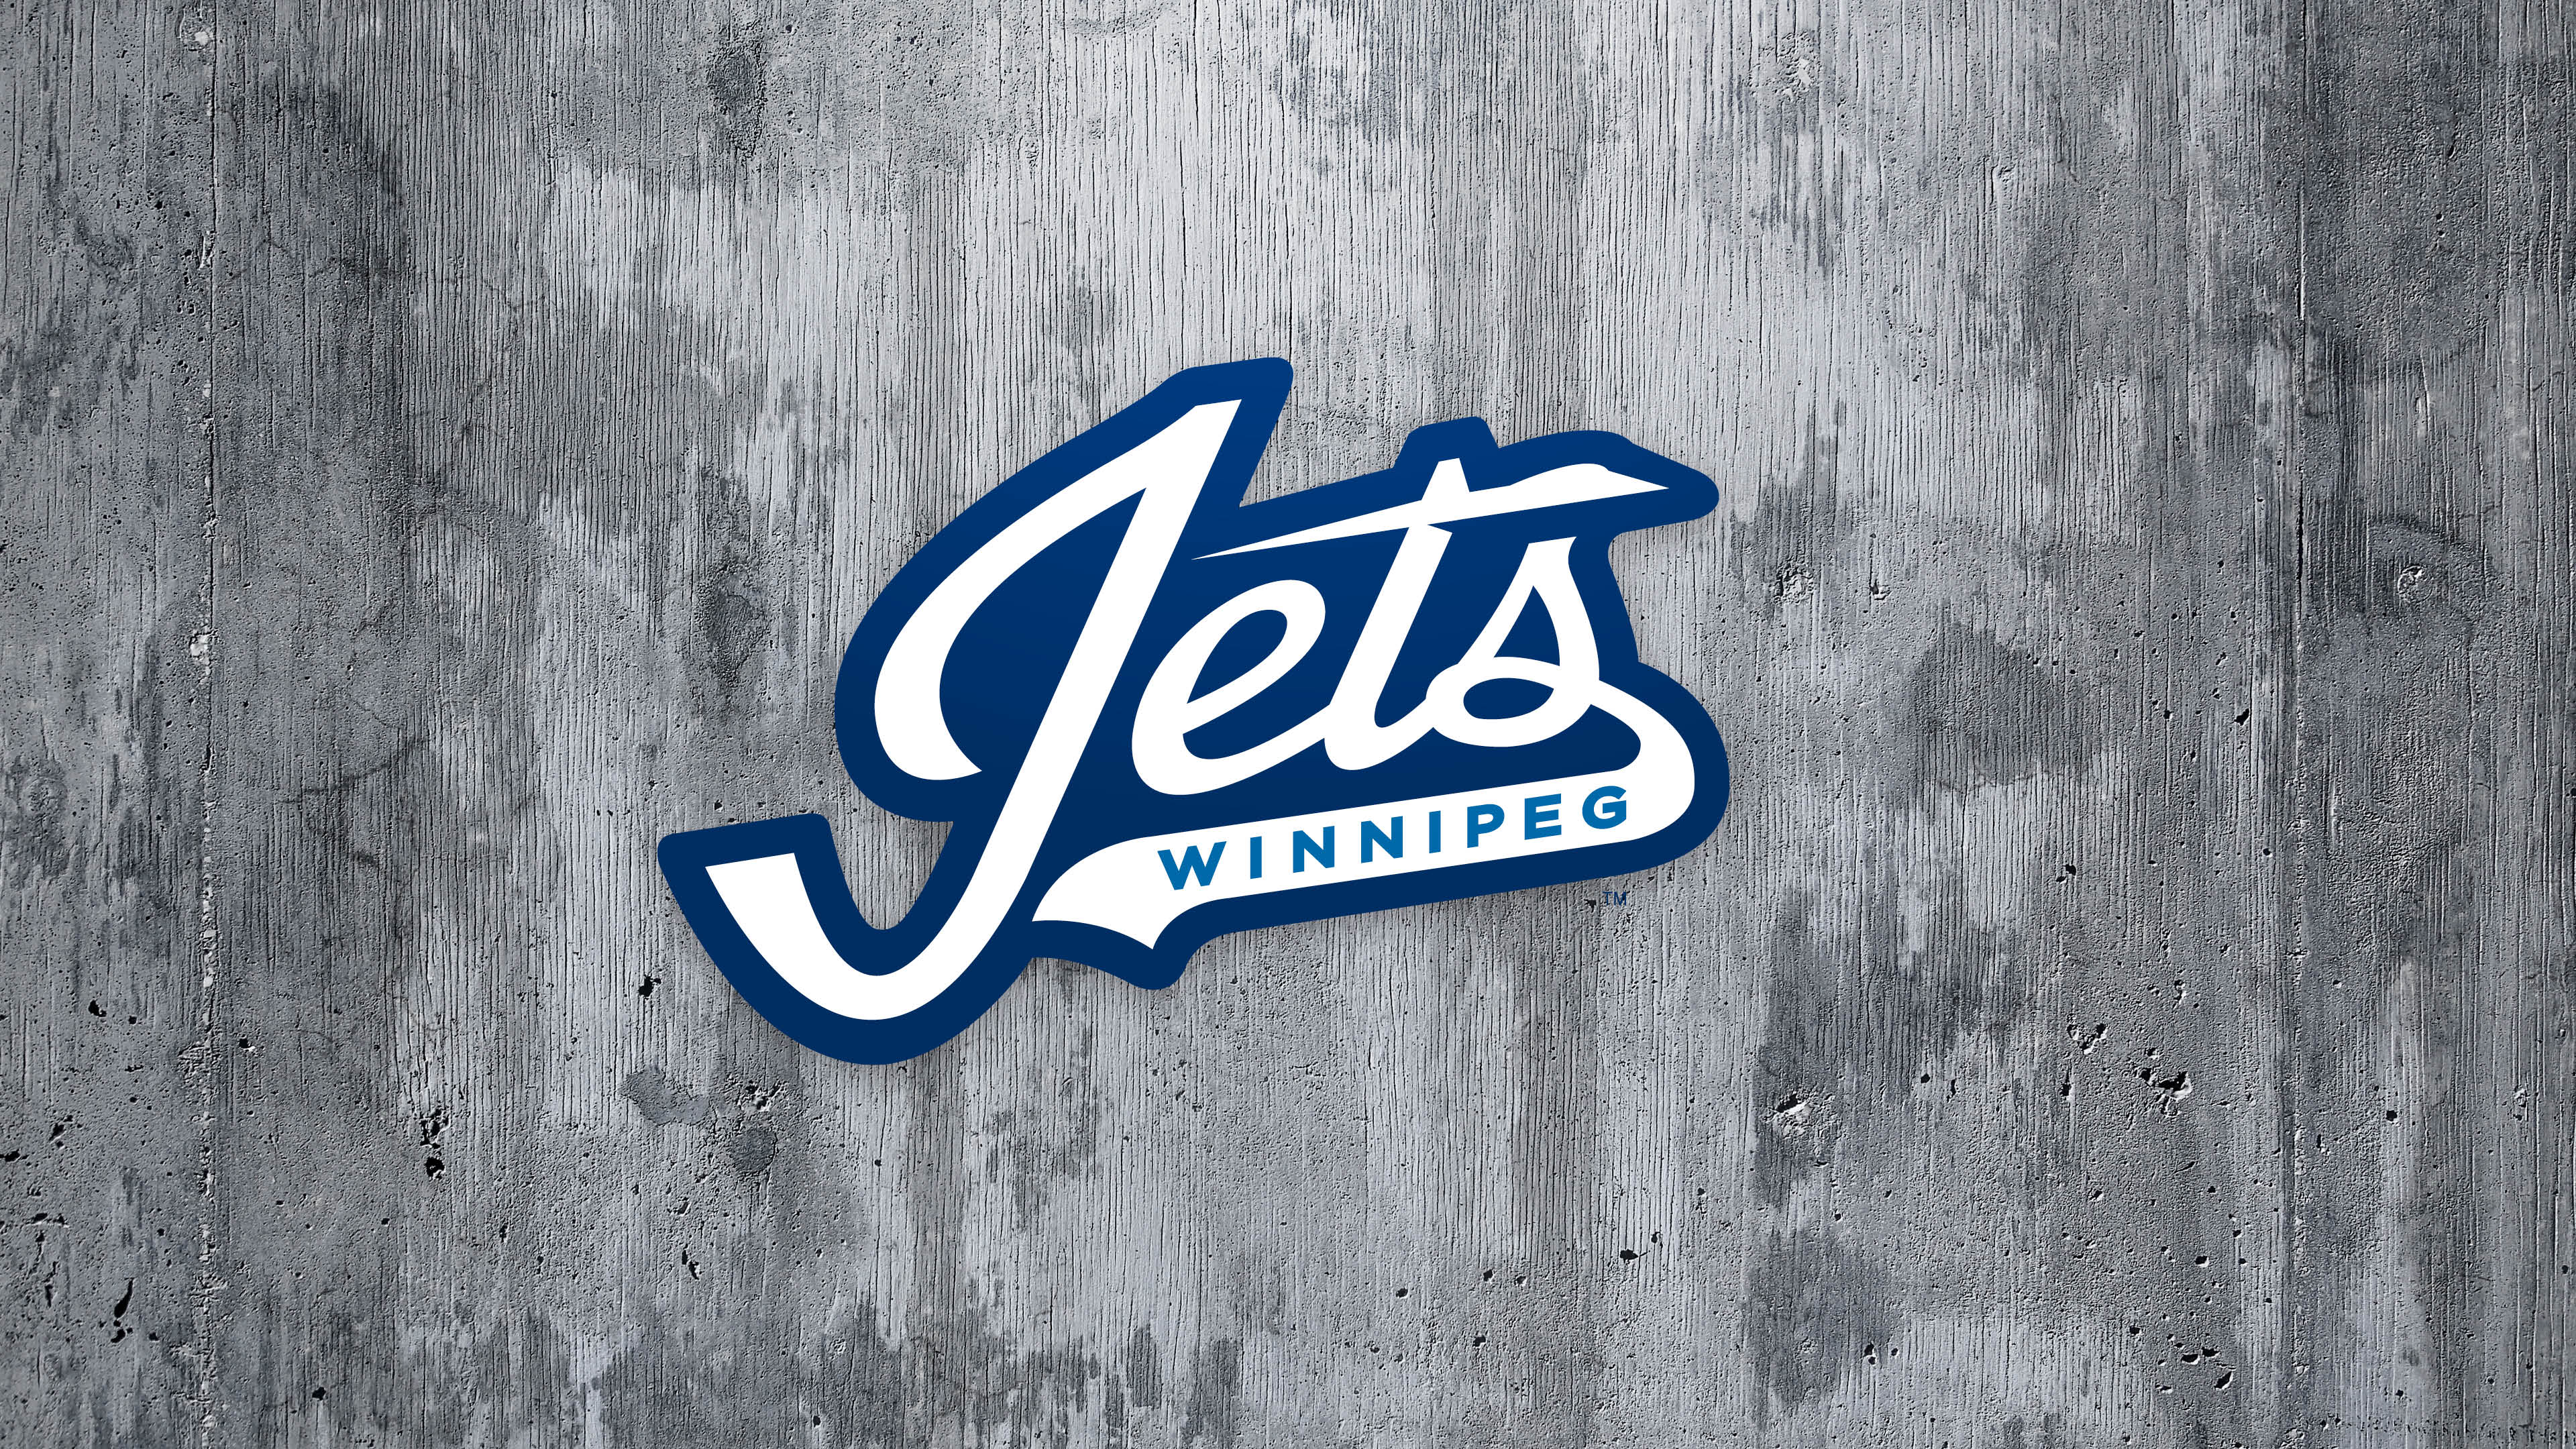 Desktop Mobile Wallpapers Winnipeg Jets 3840x2160